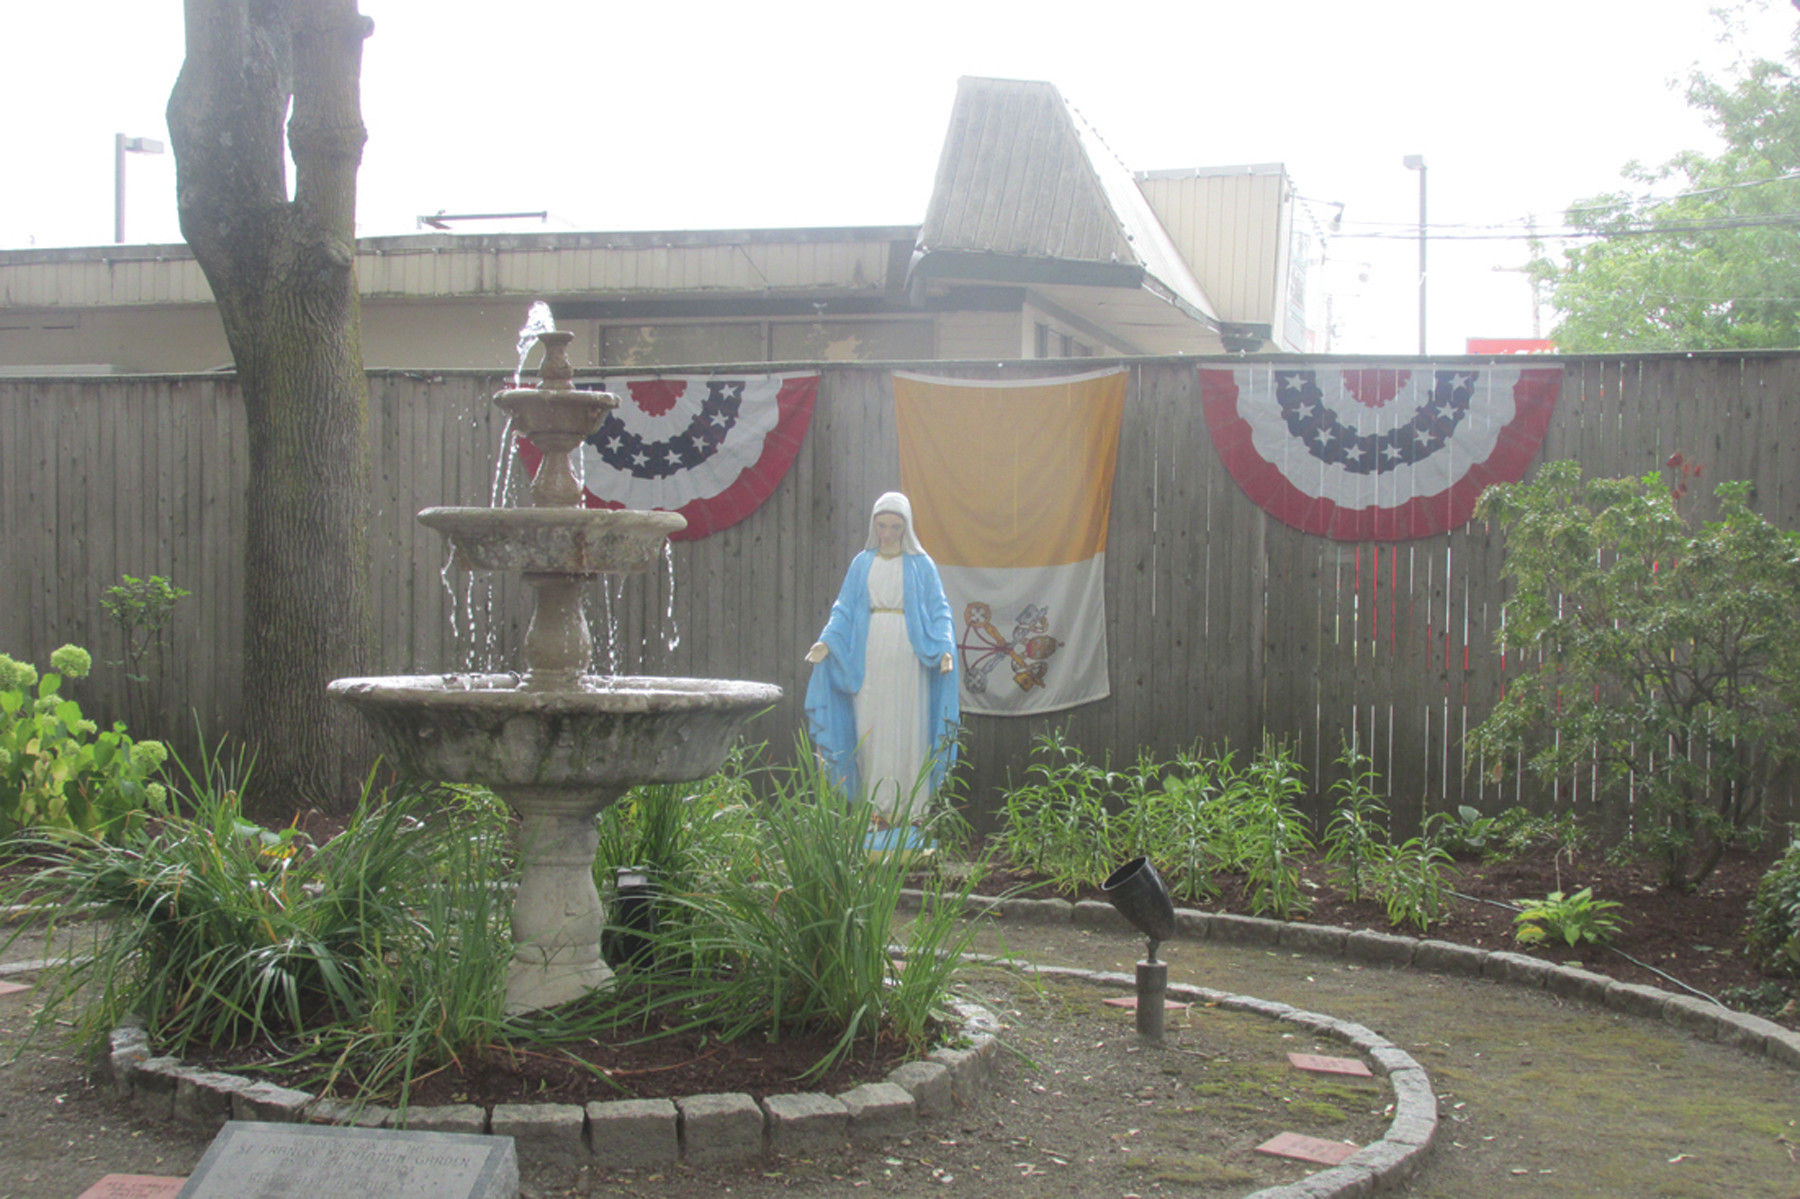 SPECIAL SIGNS: The St. Francis Garden located next to Saint Rocco Church is adorned with American and Italian flags and bunting.